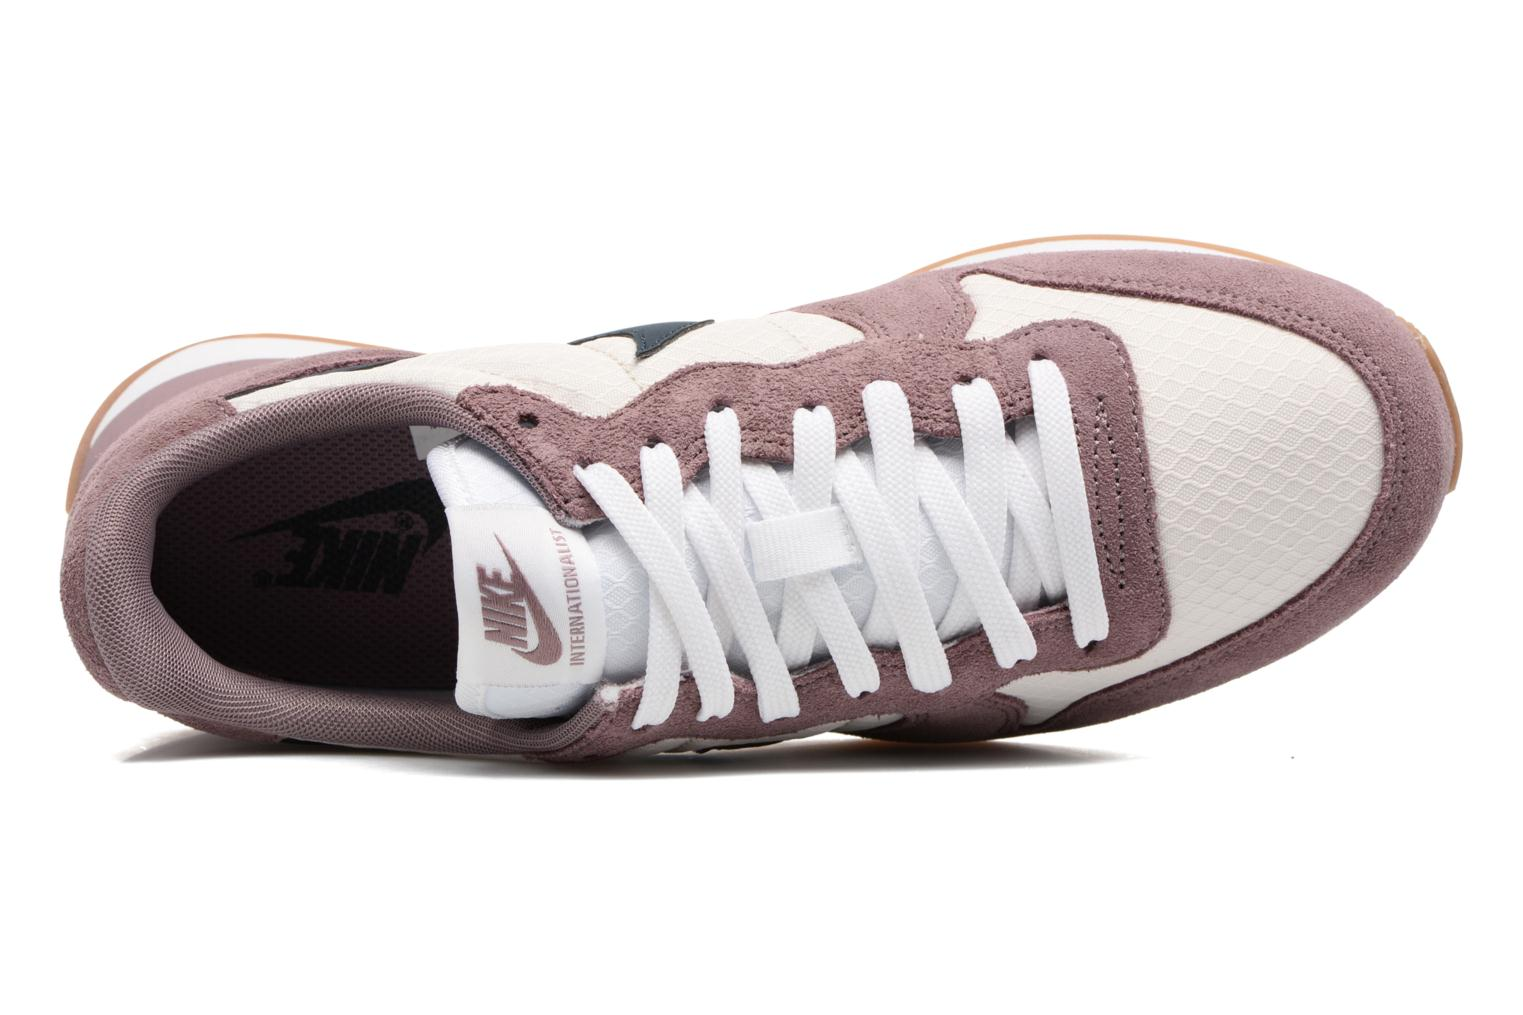 Wmns Internationalist Taupe Grey/Armory Navy-Lt Orewood Brn